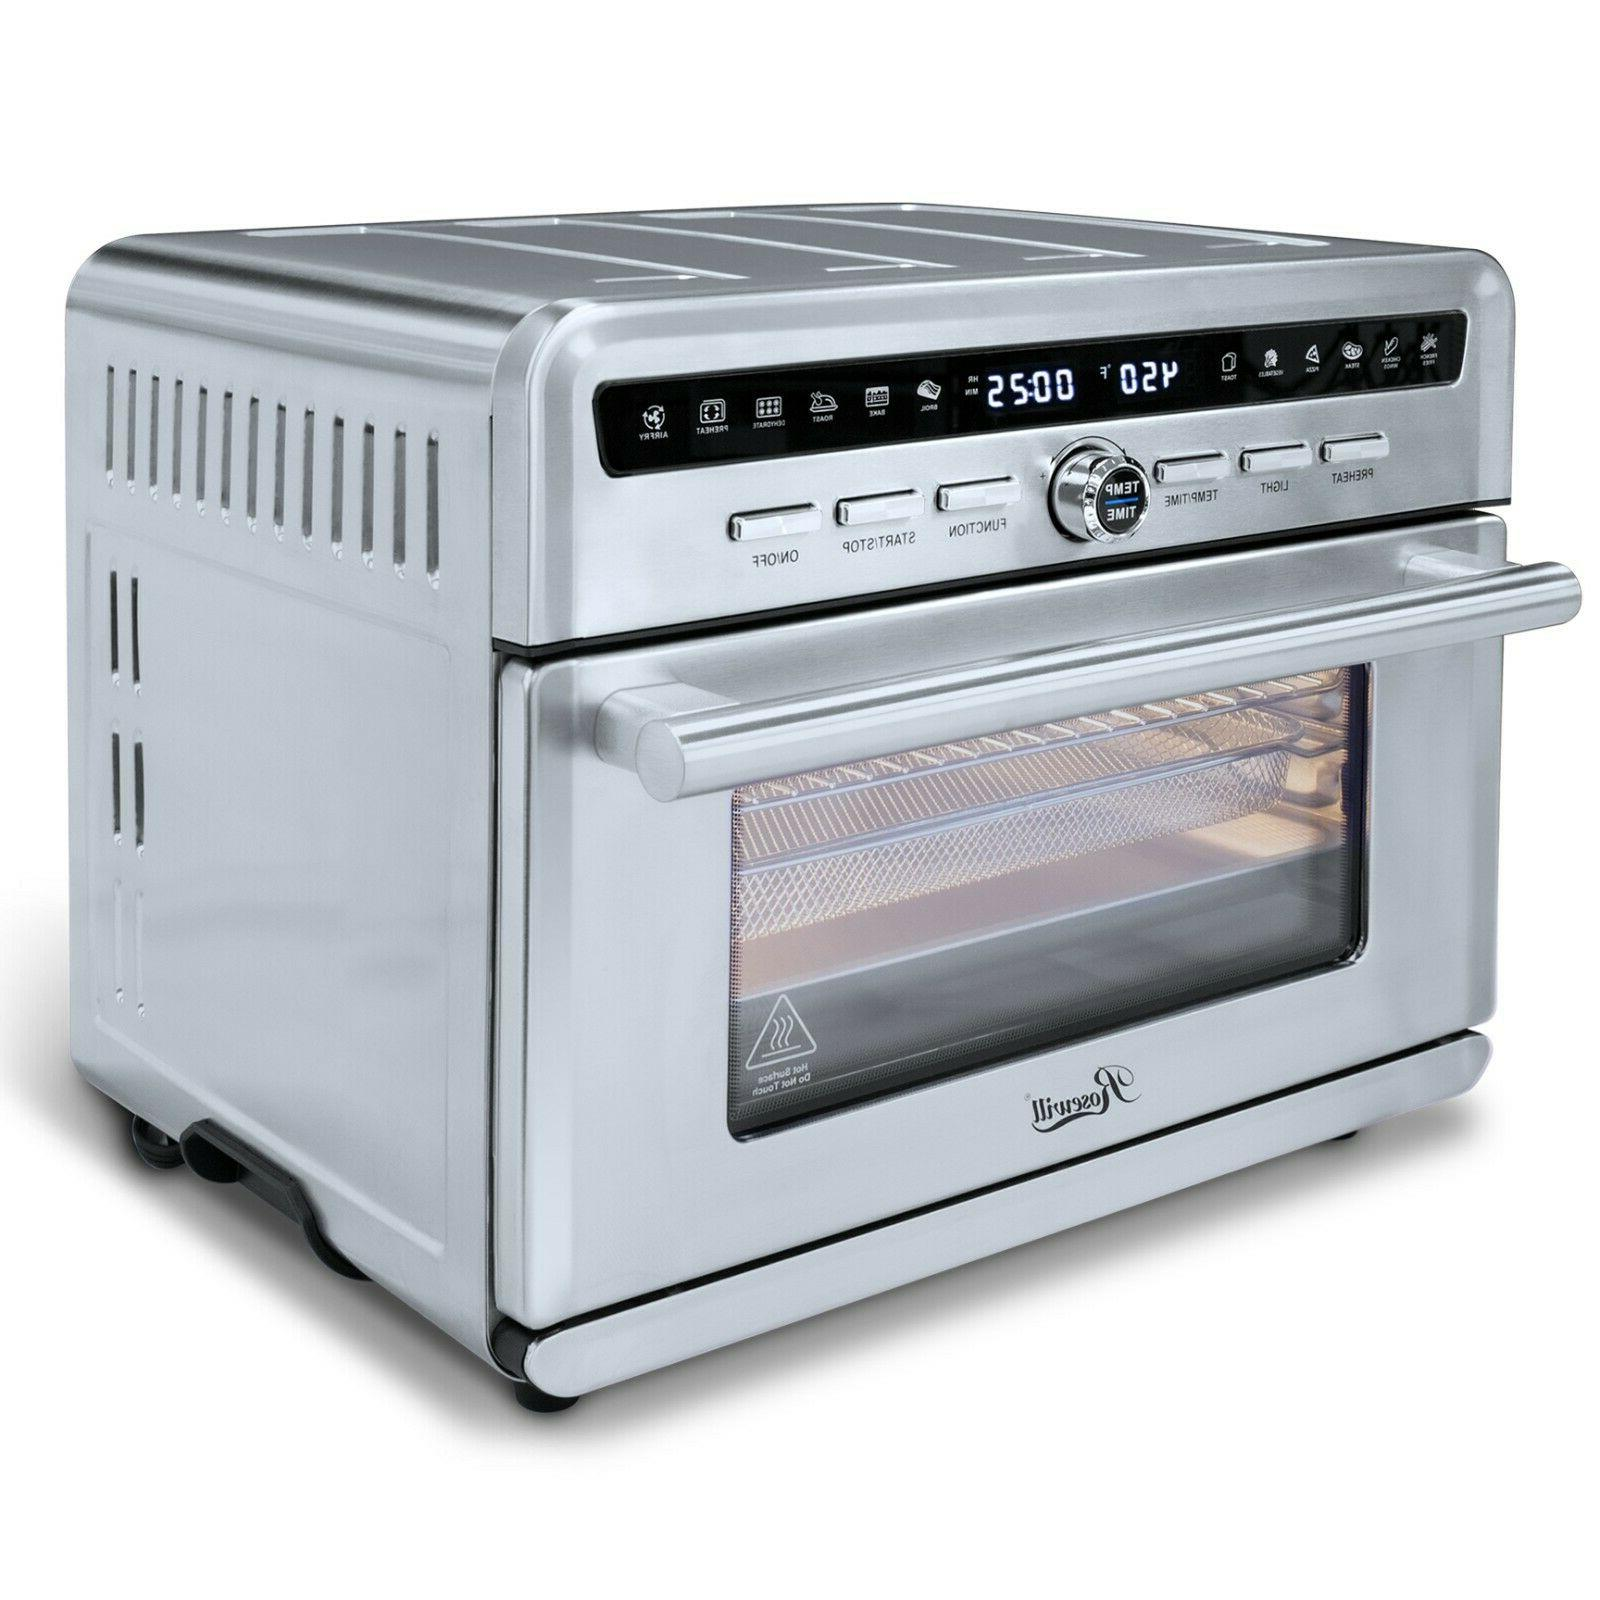 air fryer convection toaster oven family size